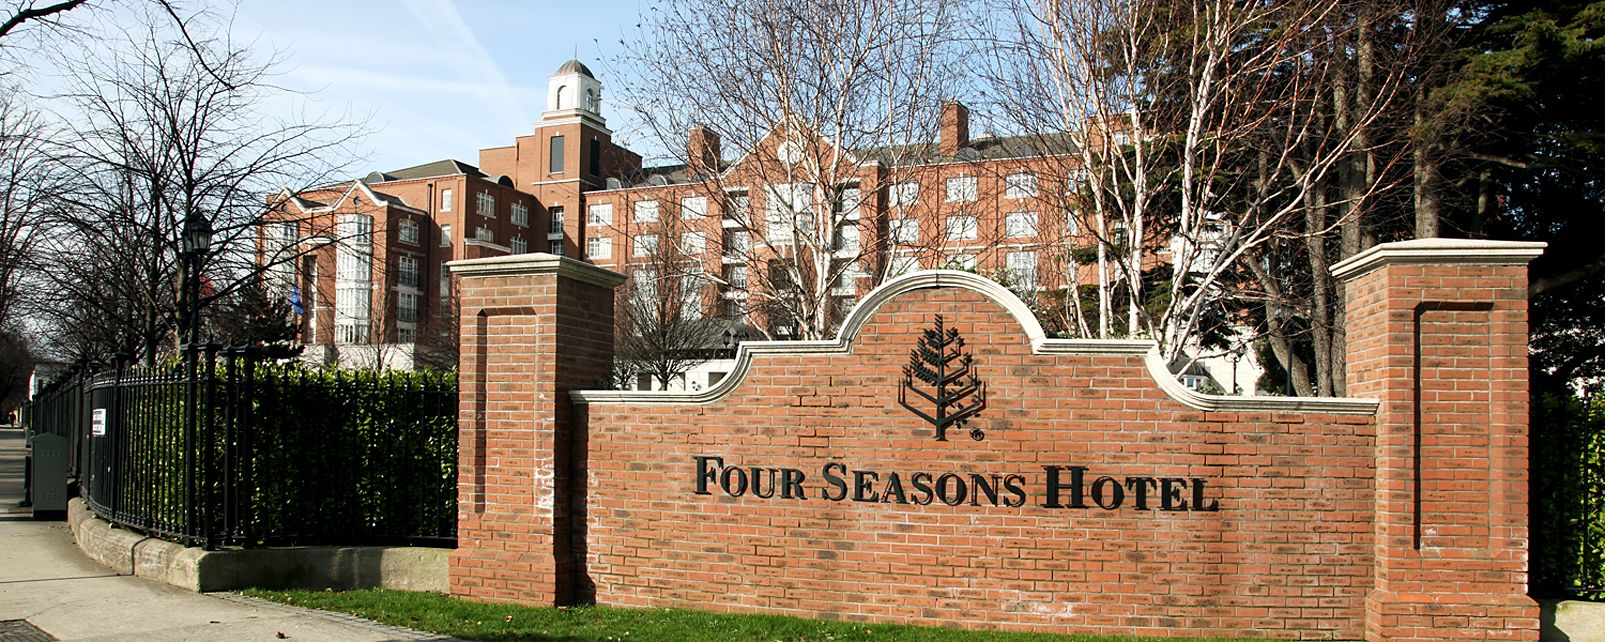 Hotel Four Seasons Dublin